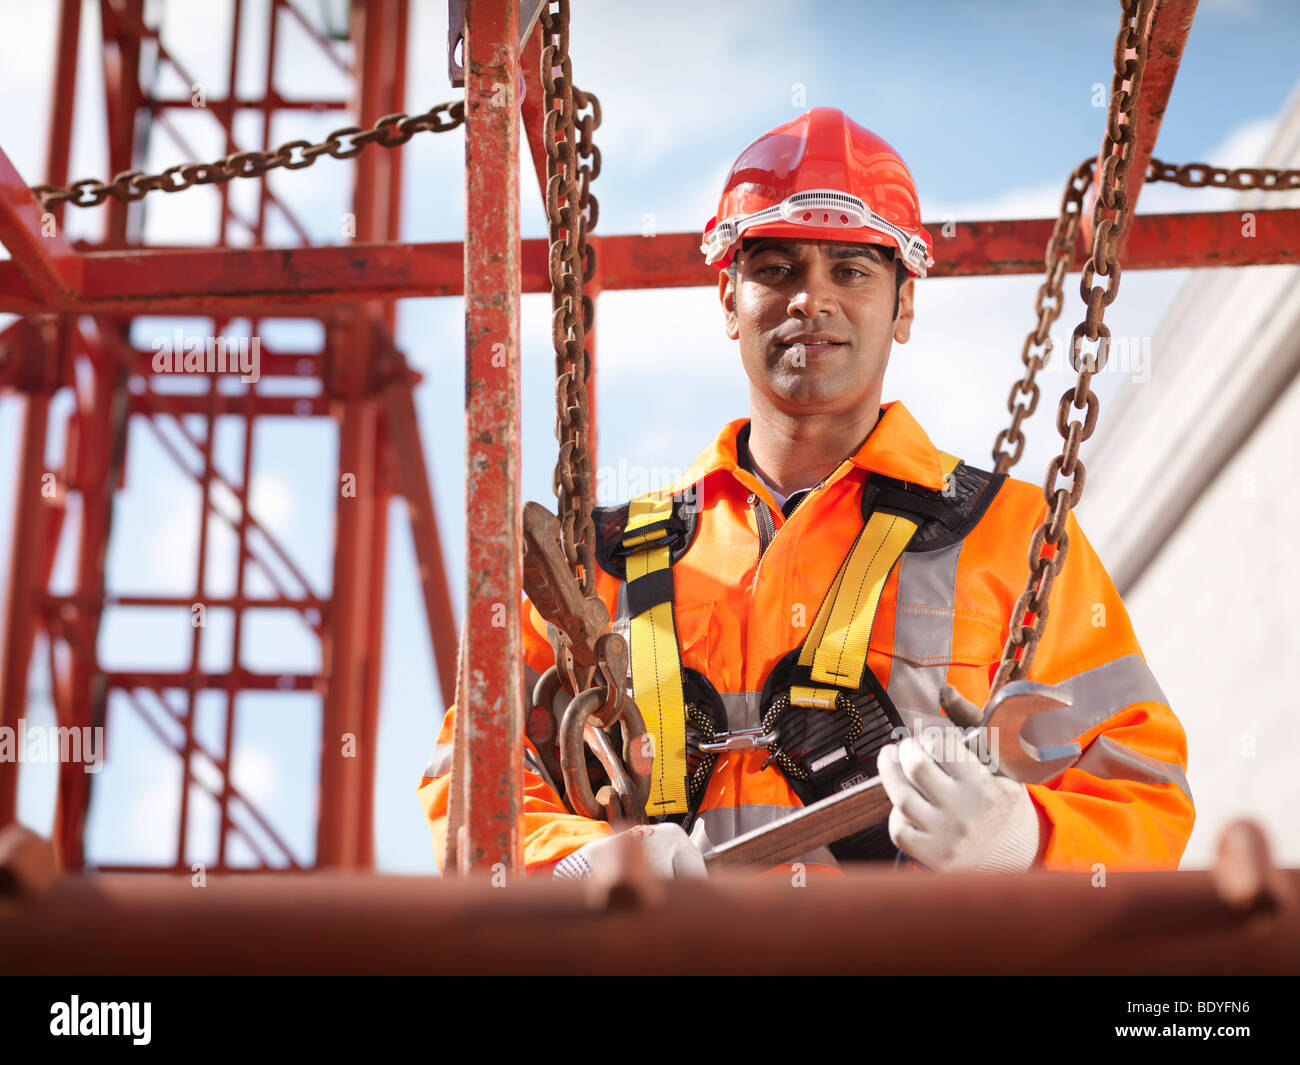 Crane Worker With Spanner - Stock Image